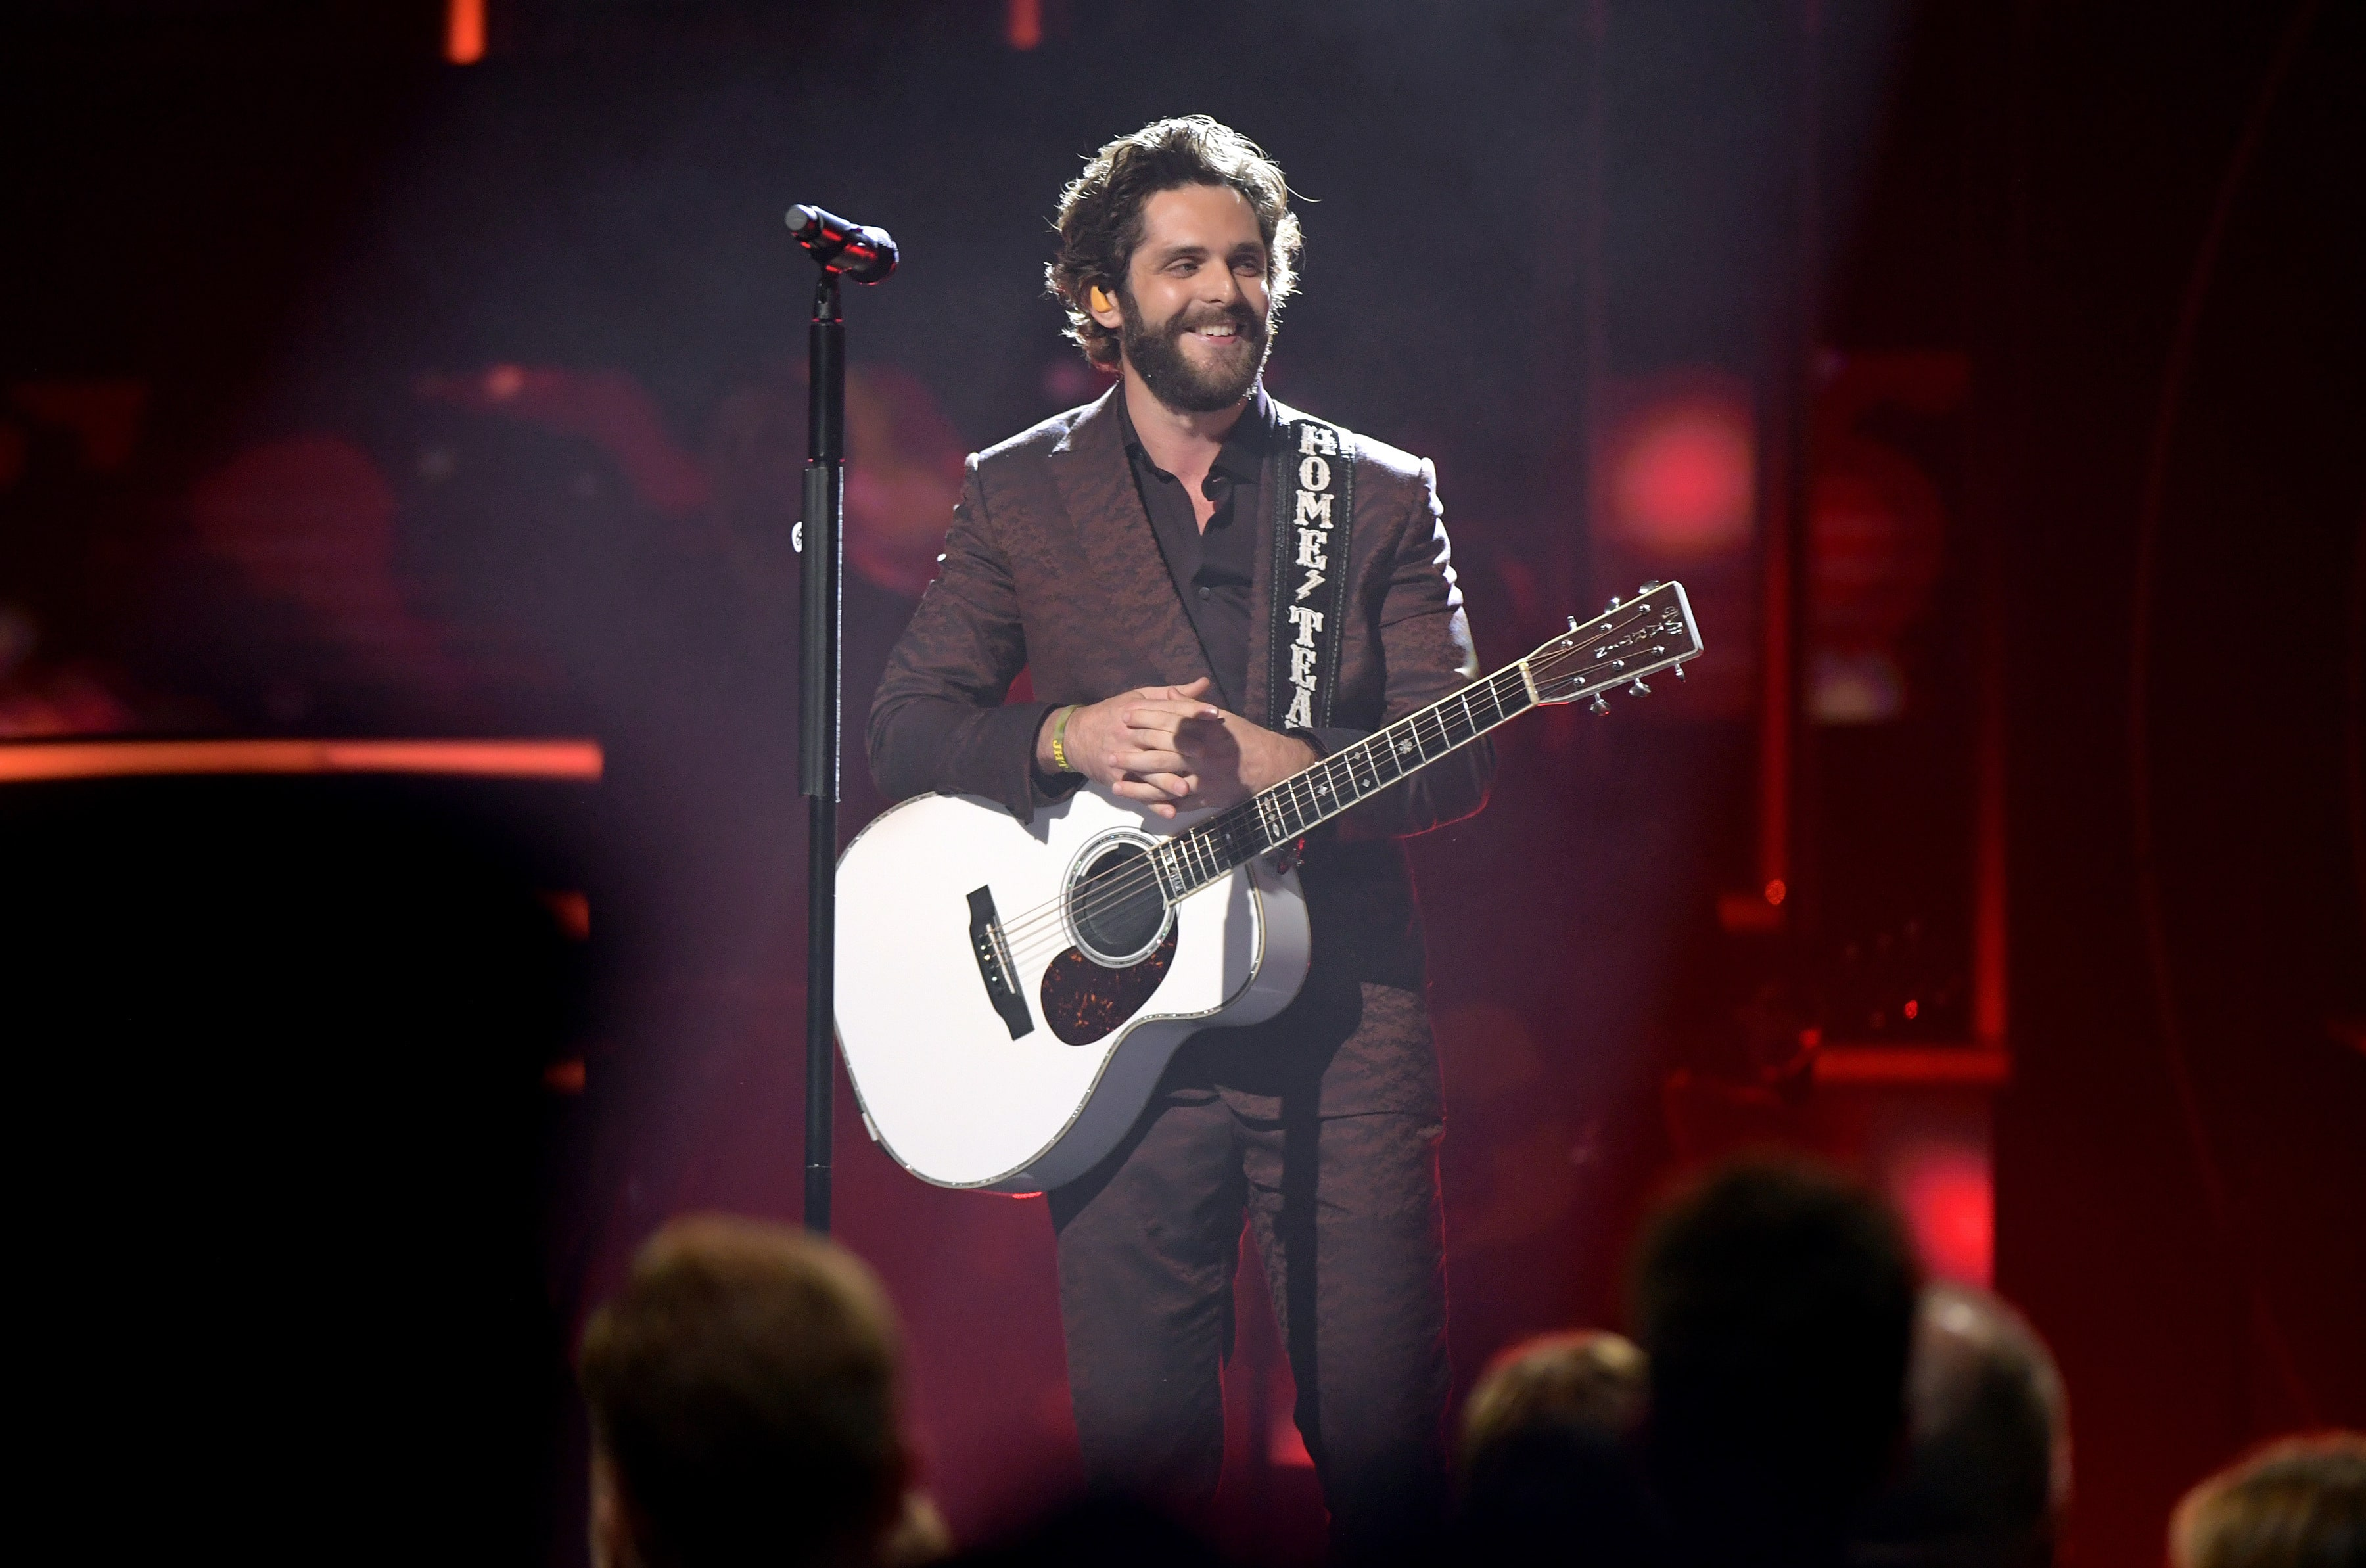 Thomas Rhett Leads CMT Audience In Prayer